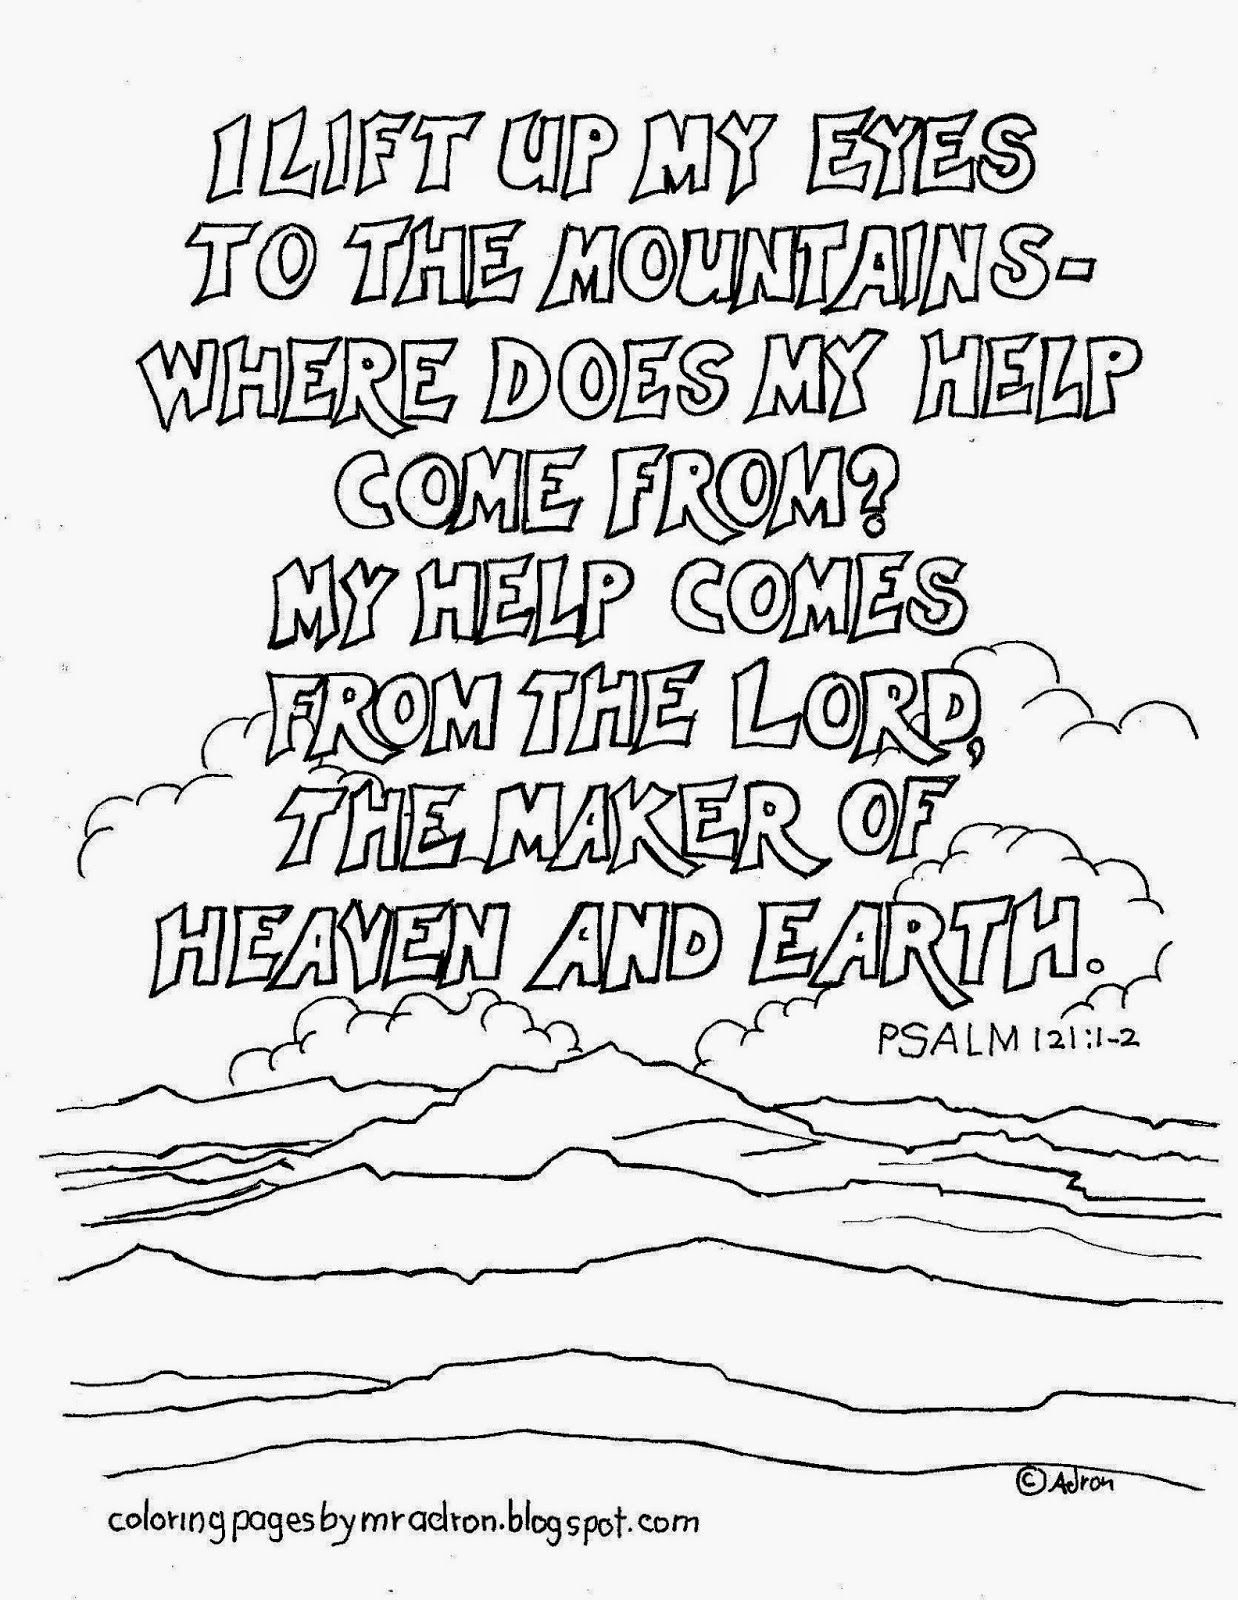 psalm 121 1 2 coloring page see more at my blog http